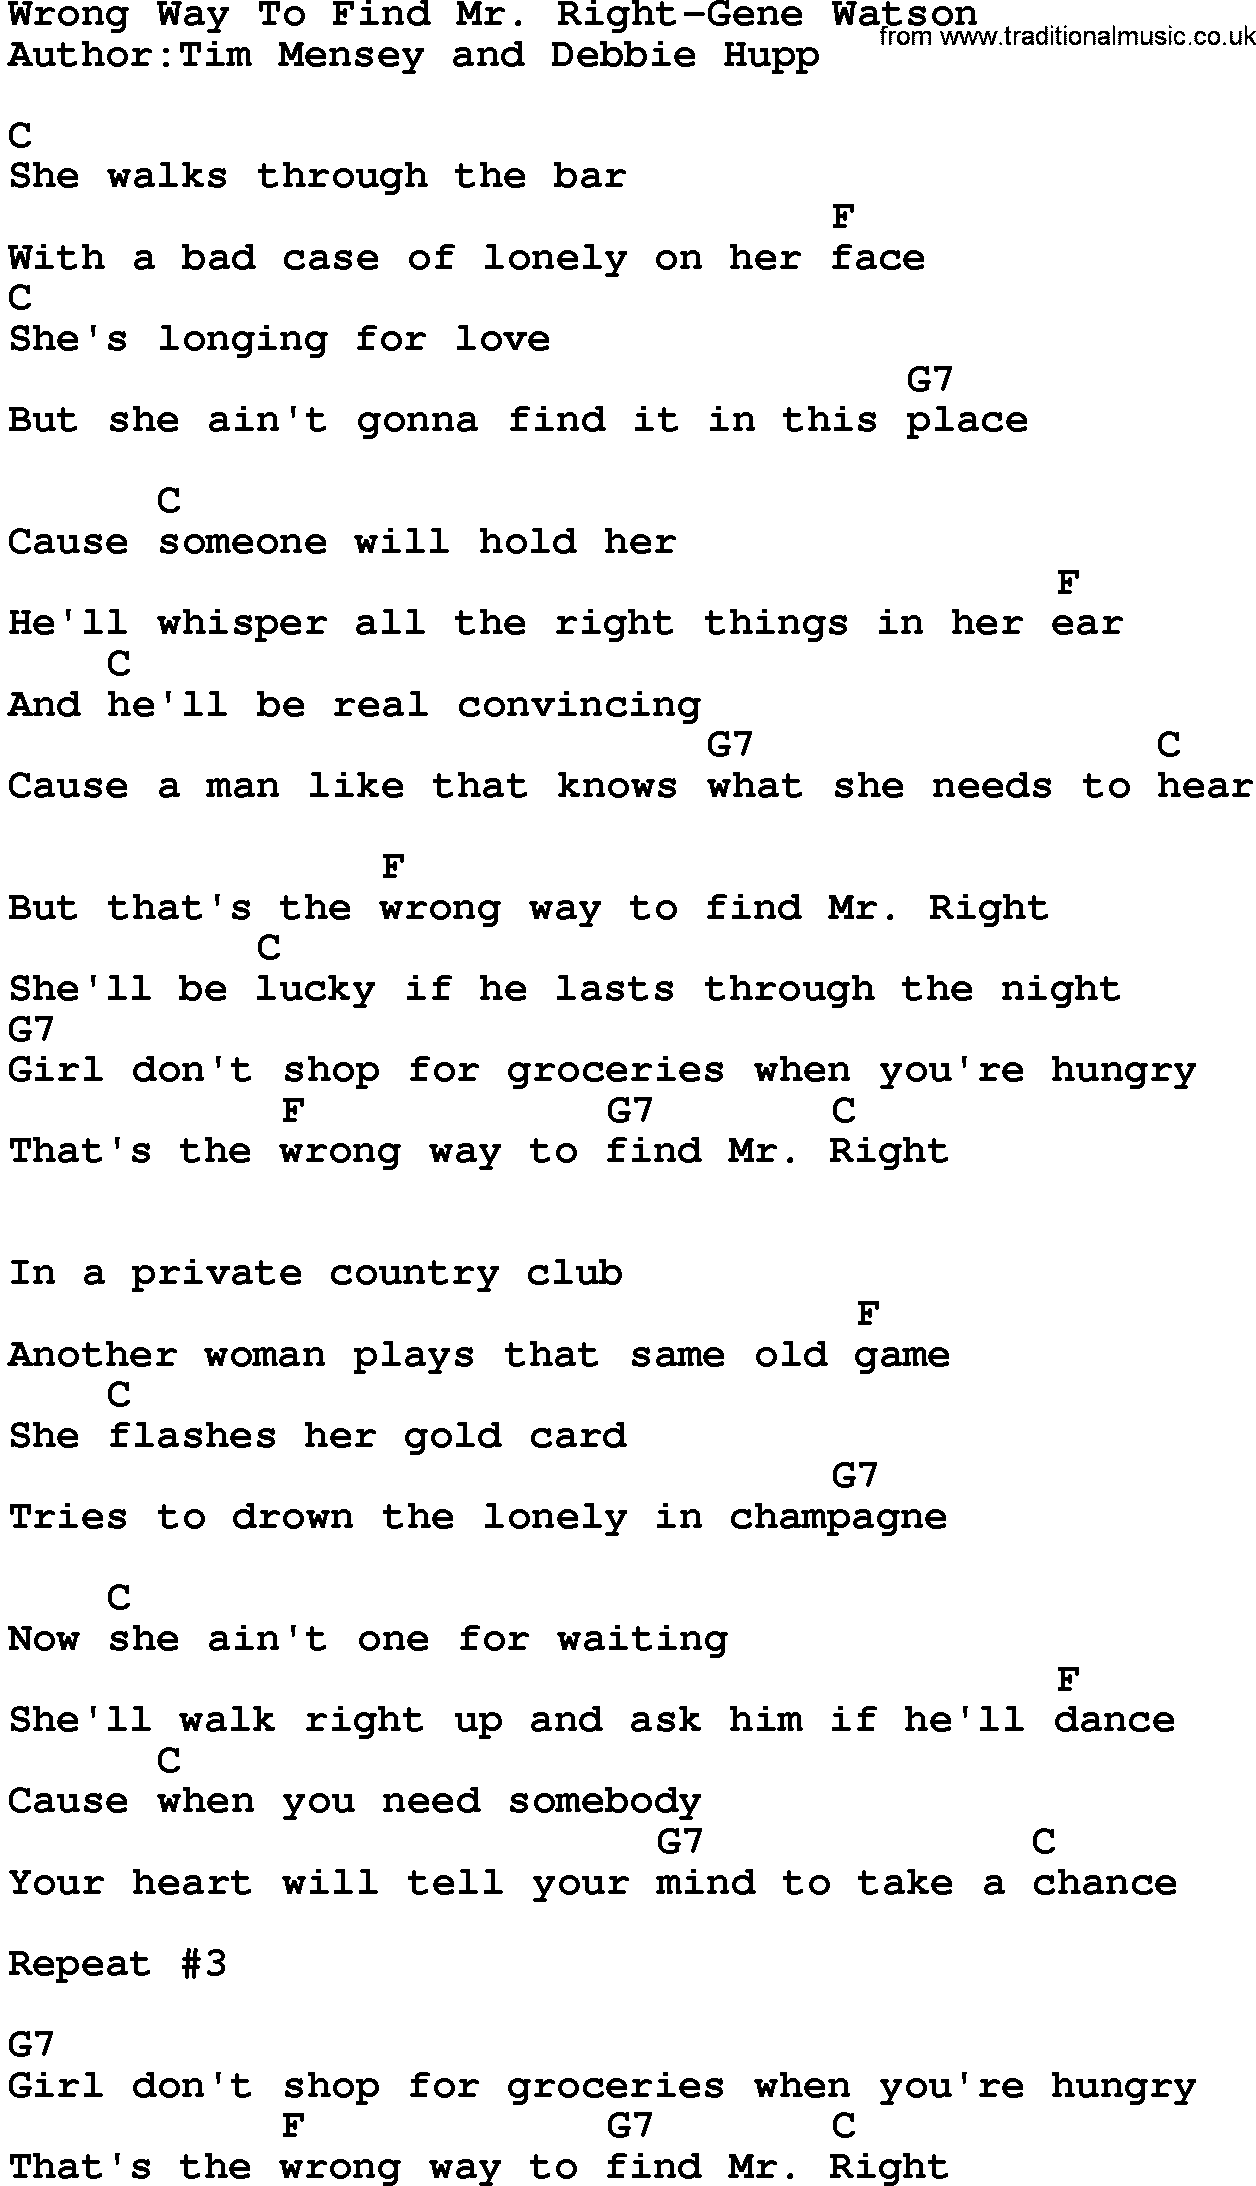 Which way is right wrong lyrics